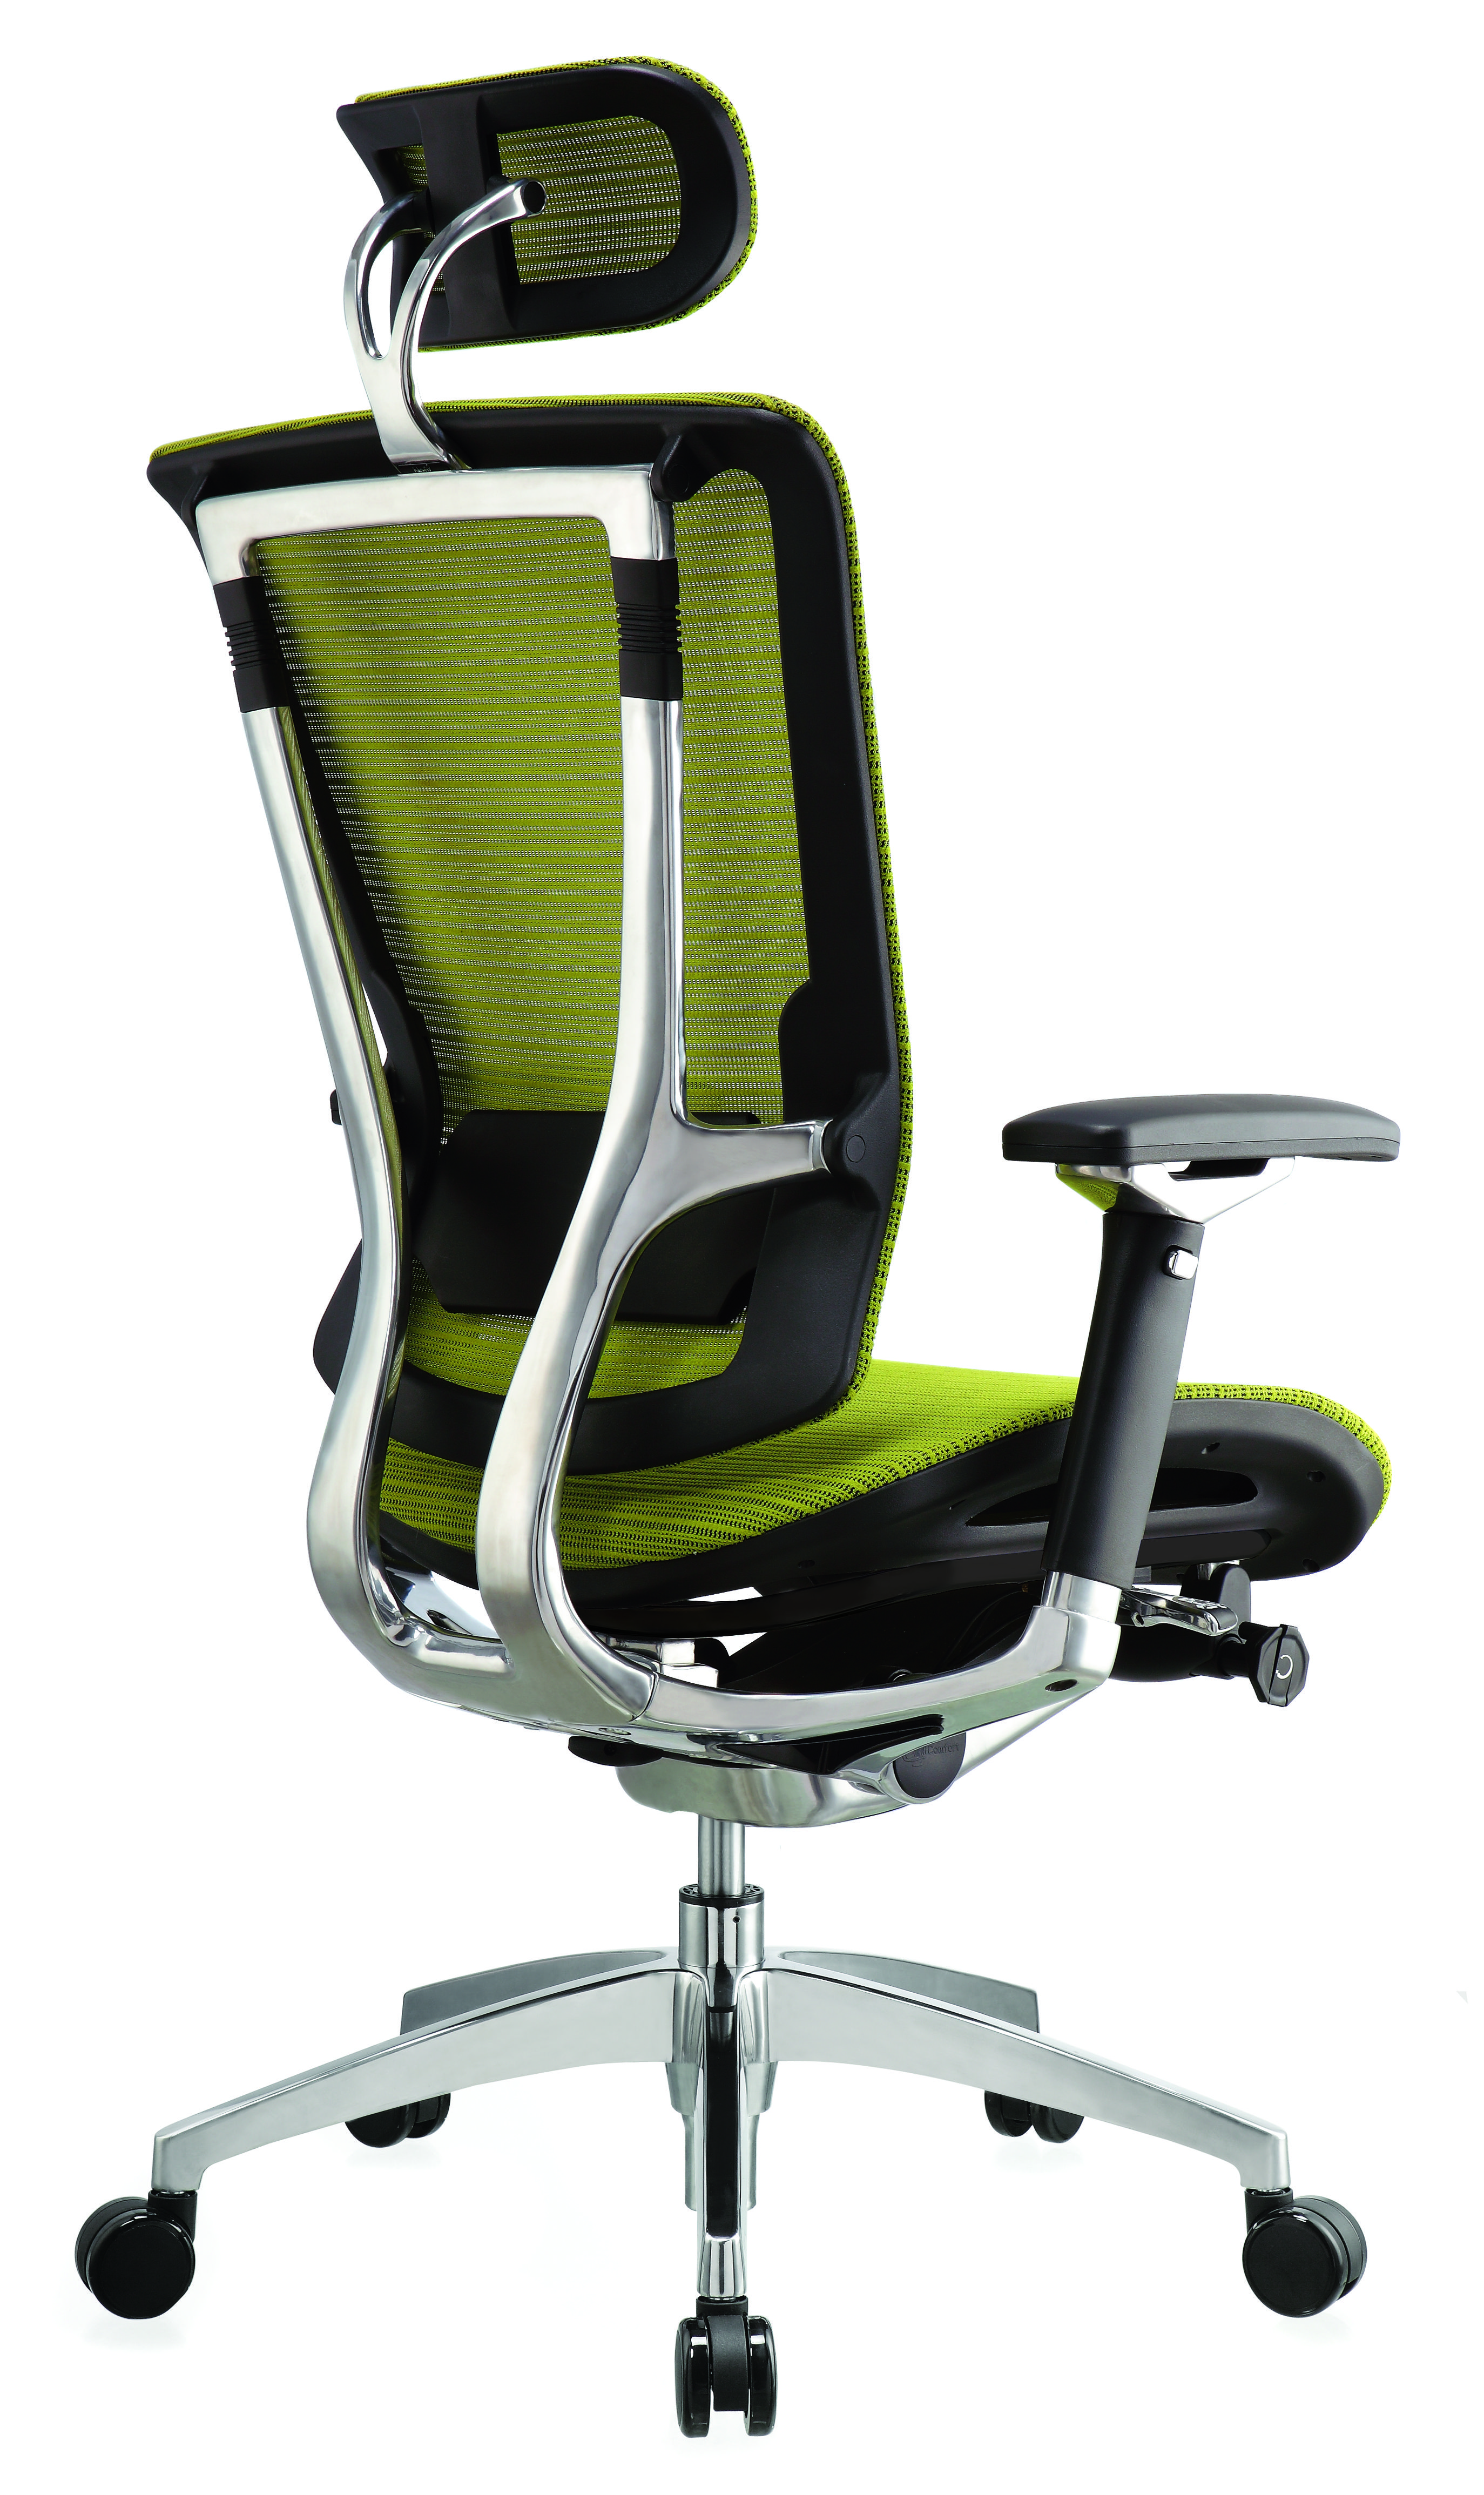 Exquisite Desk Chairs Uk Office Design With Headrest Fabric Green